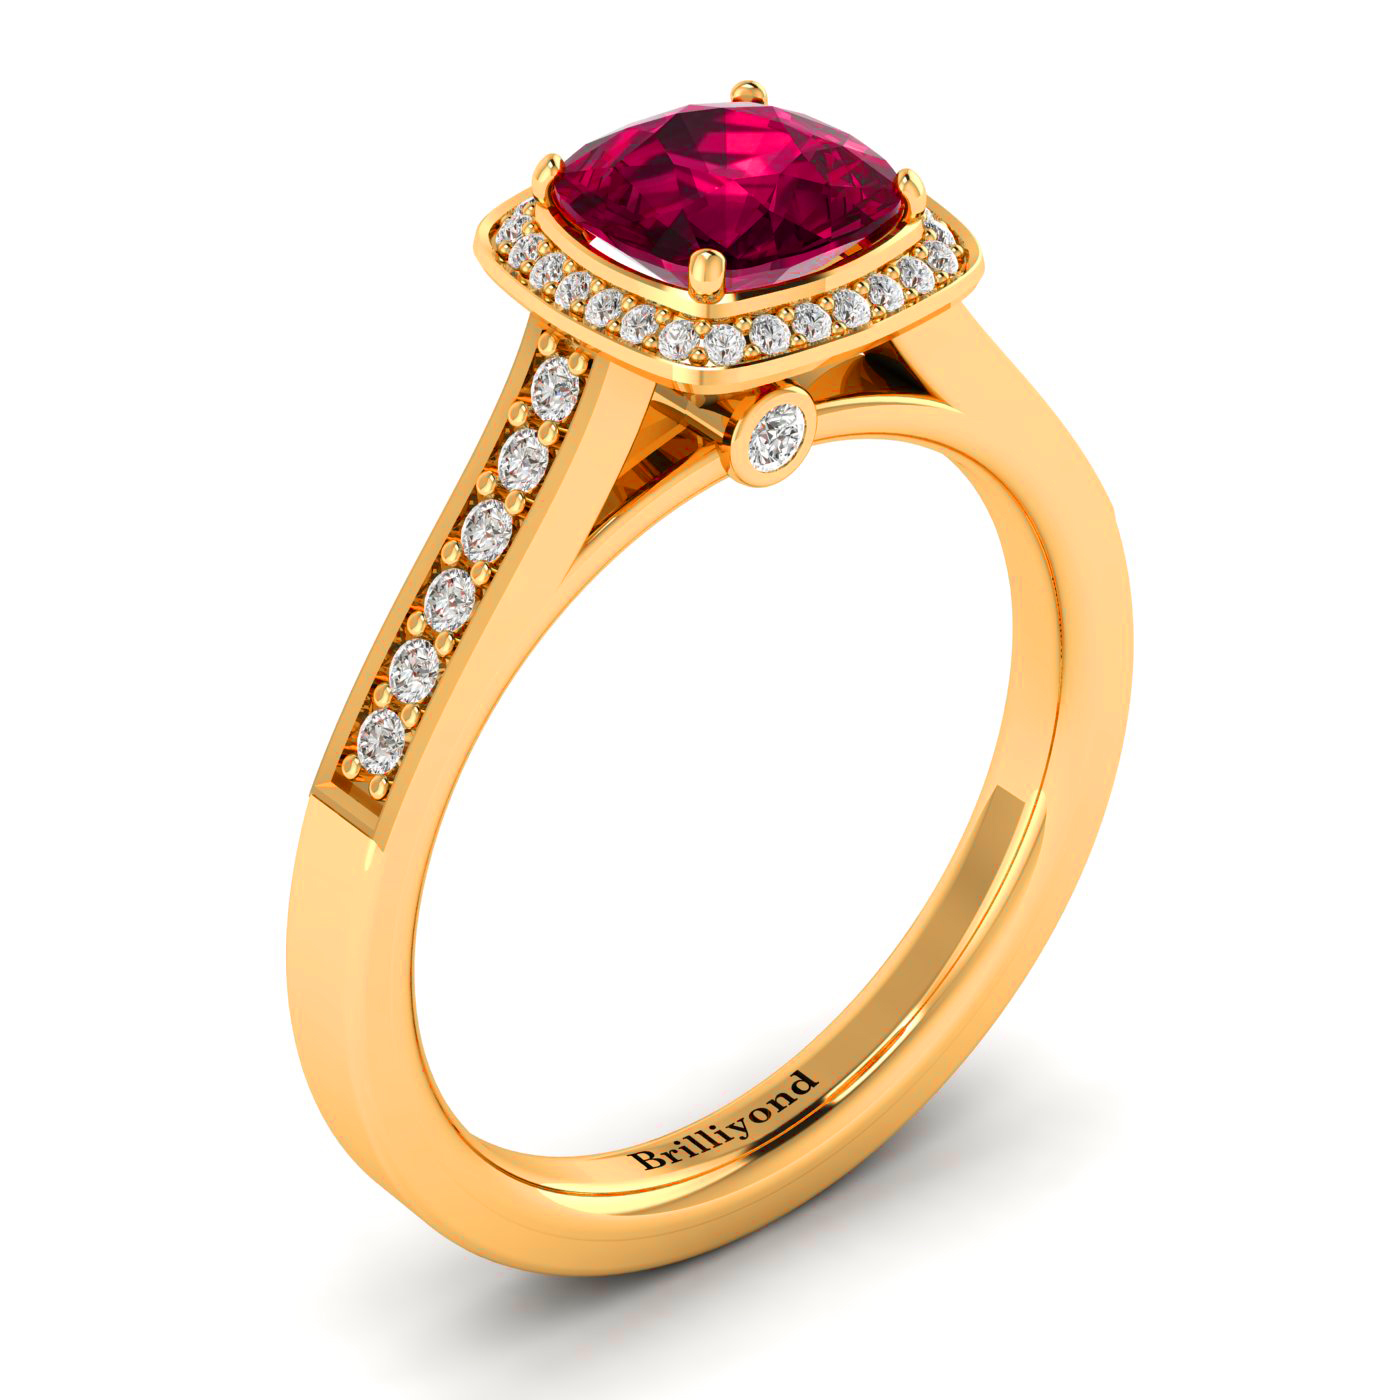 Diamond Accented Ruby Cushion Cut Engagement Ring by Brilliyond Australia